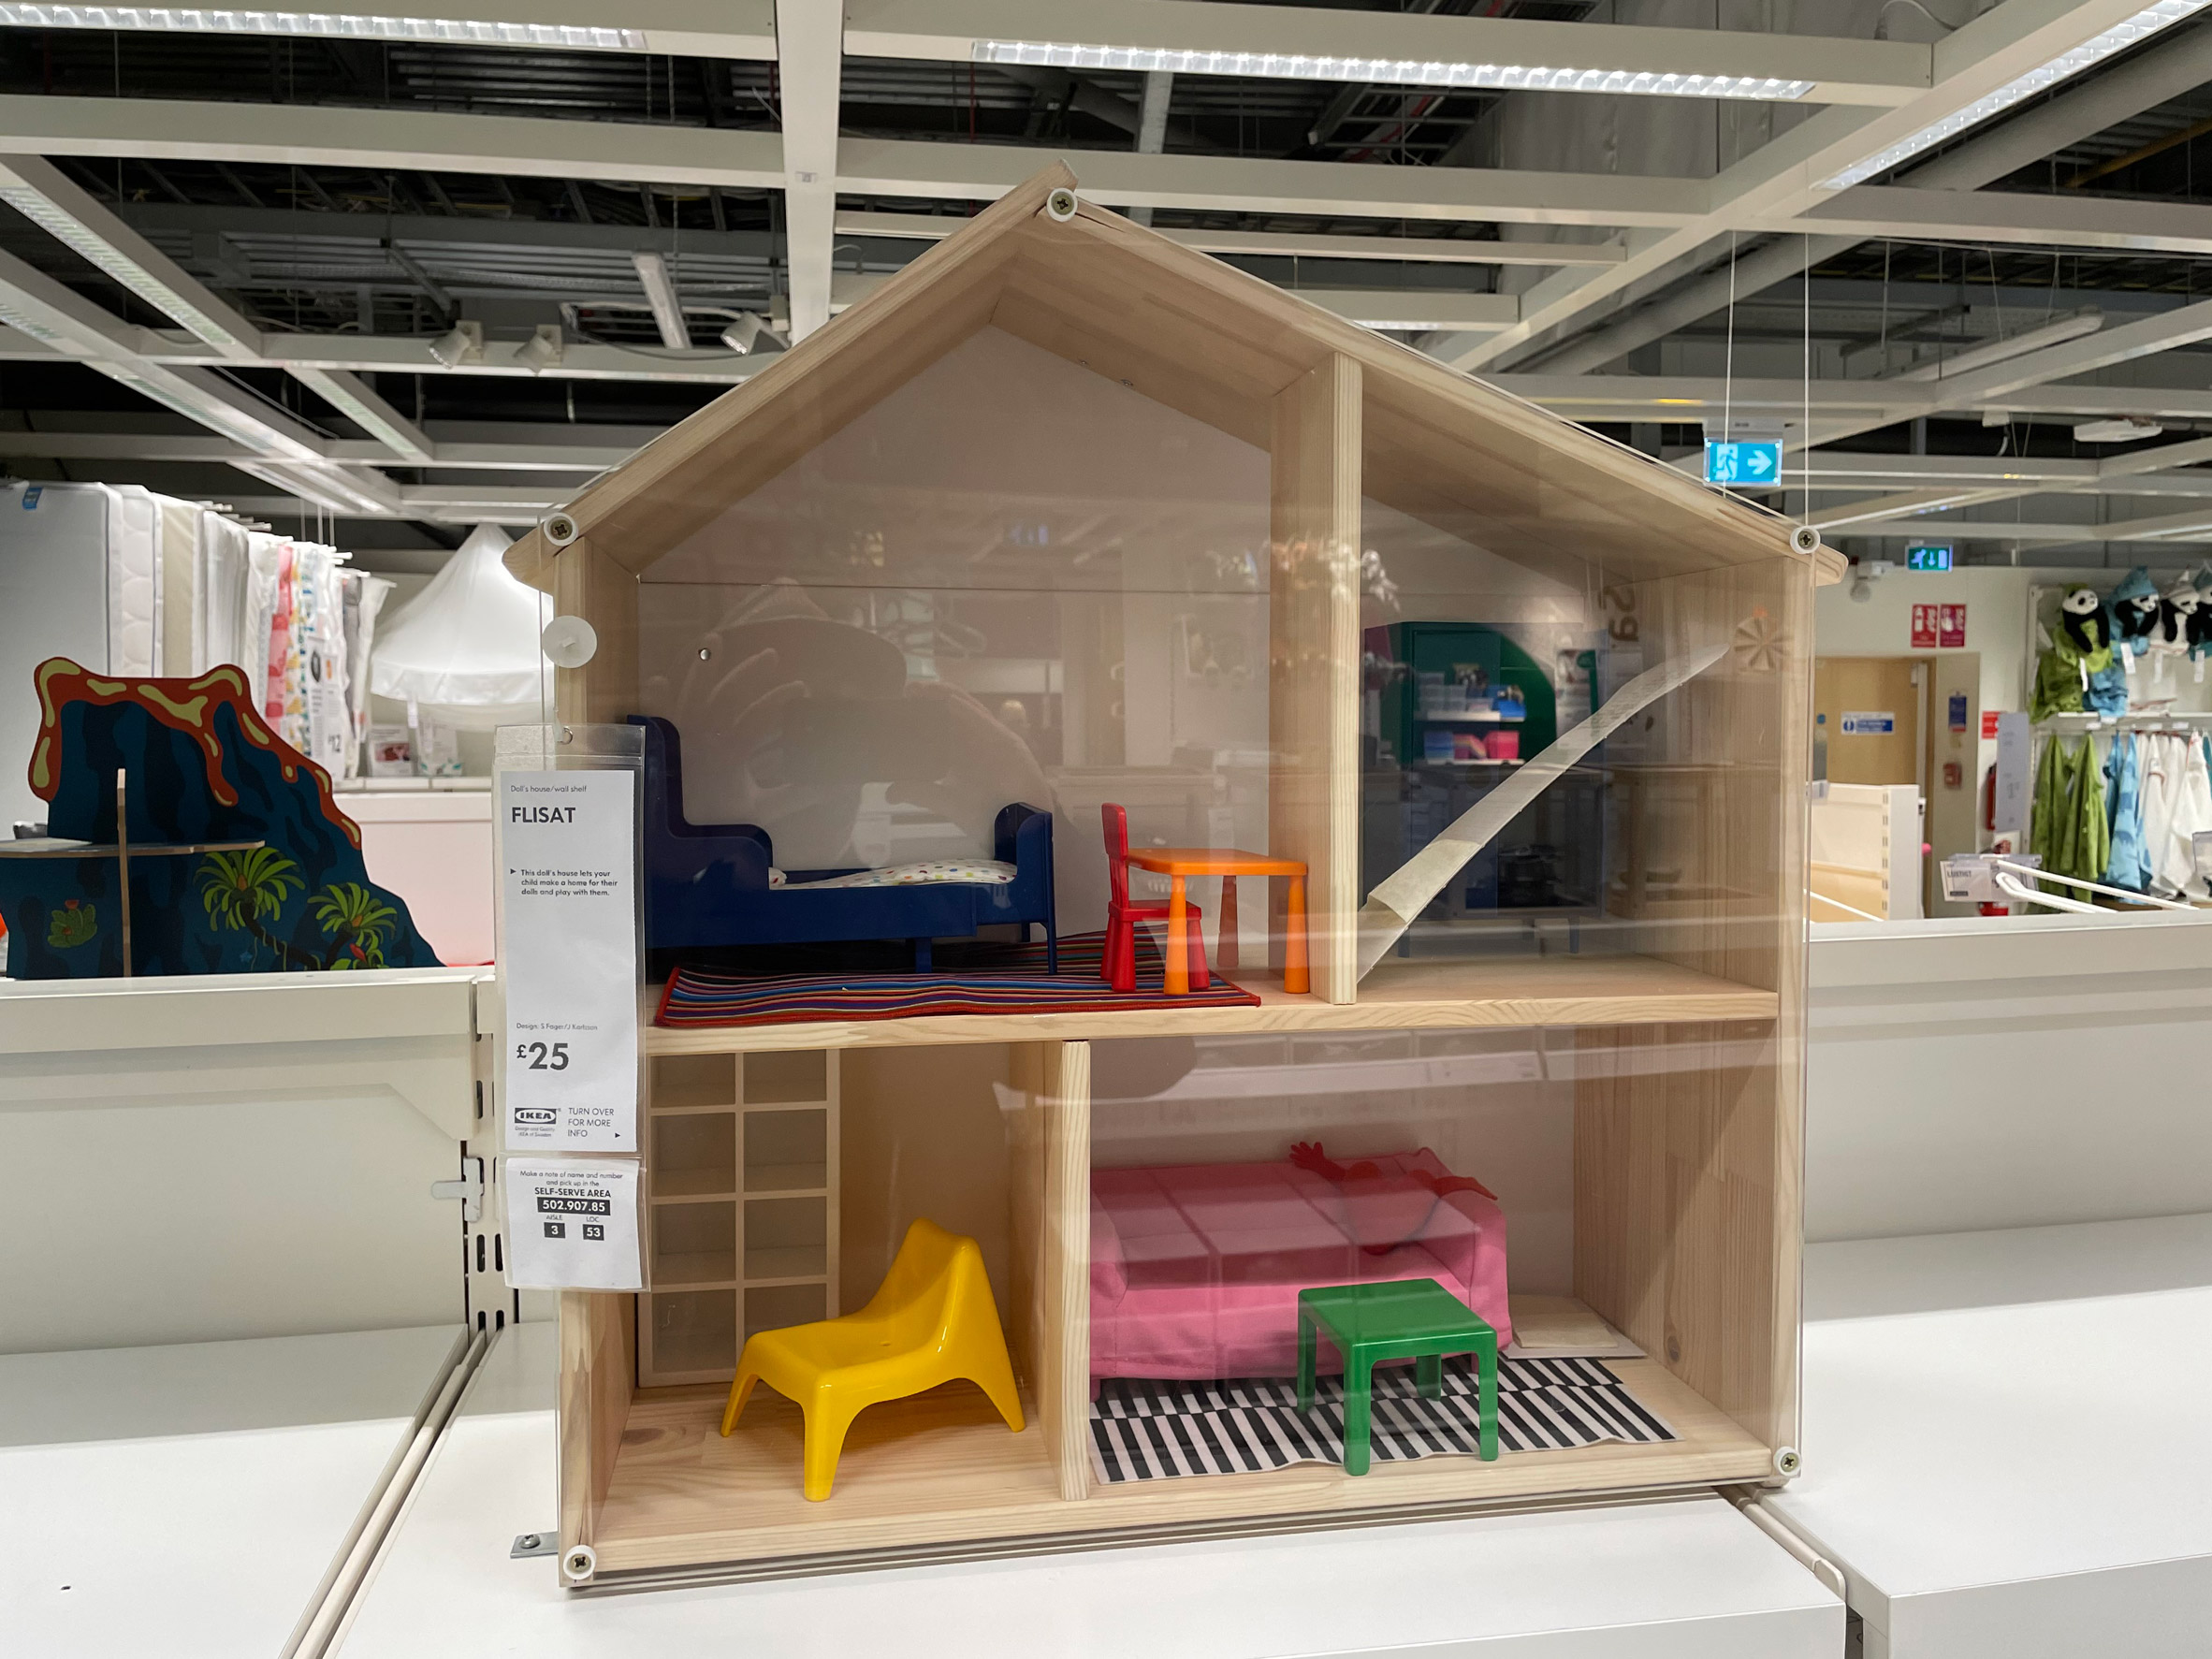 A wooden playhouse by IKEA